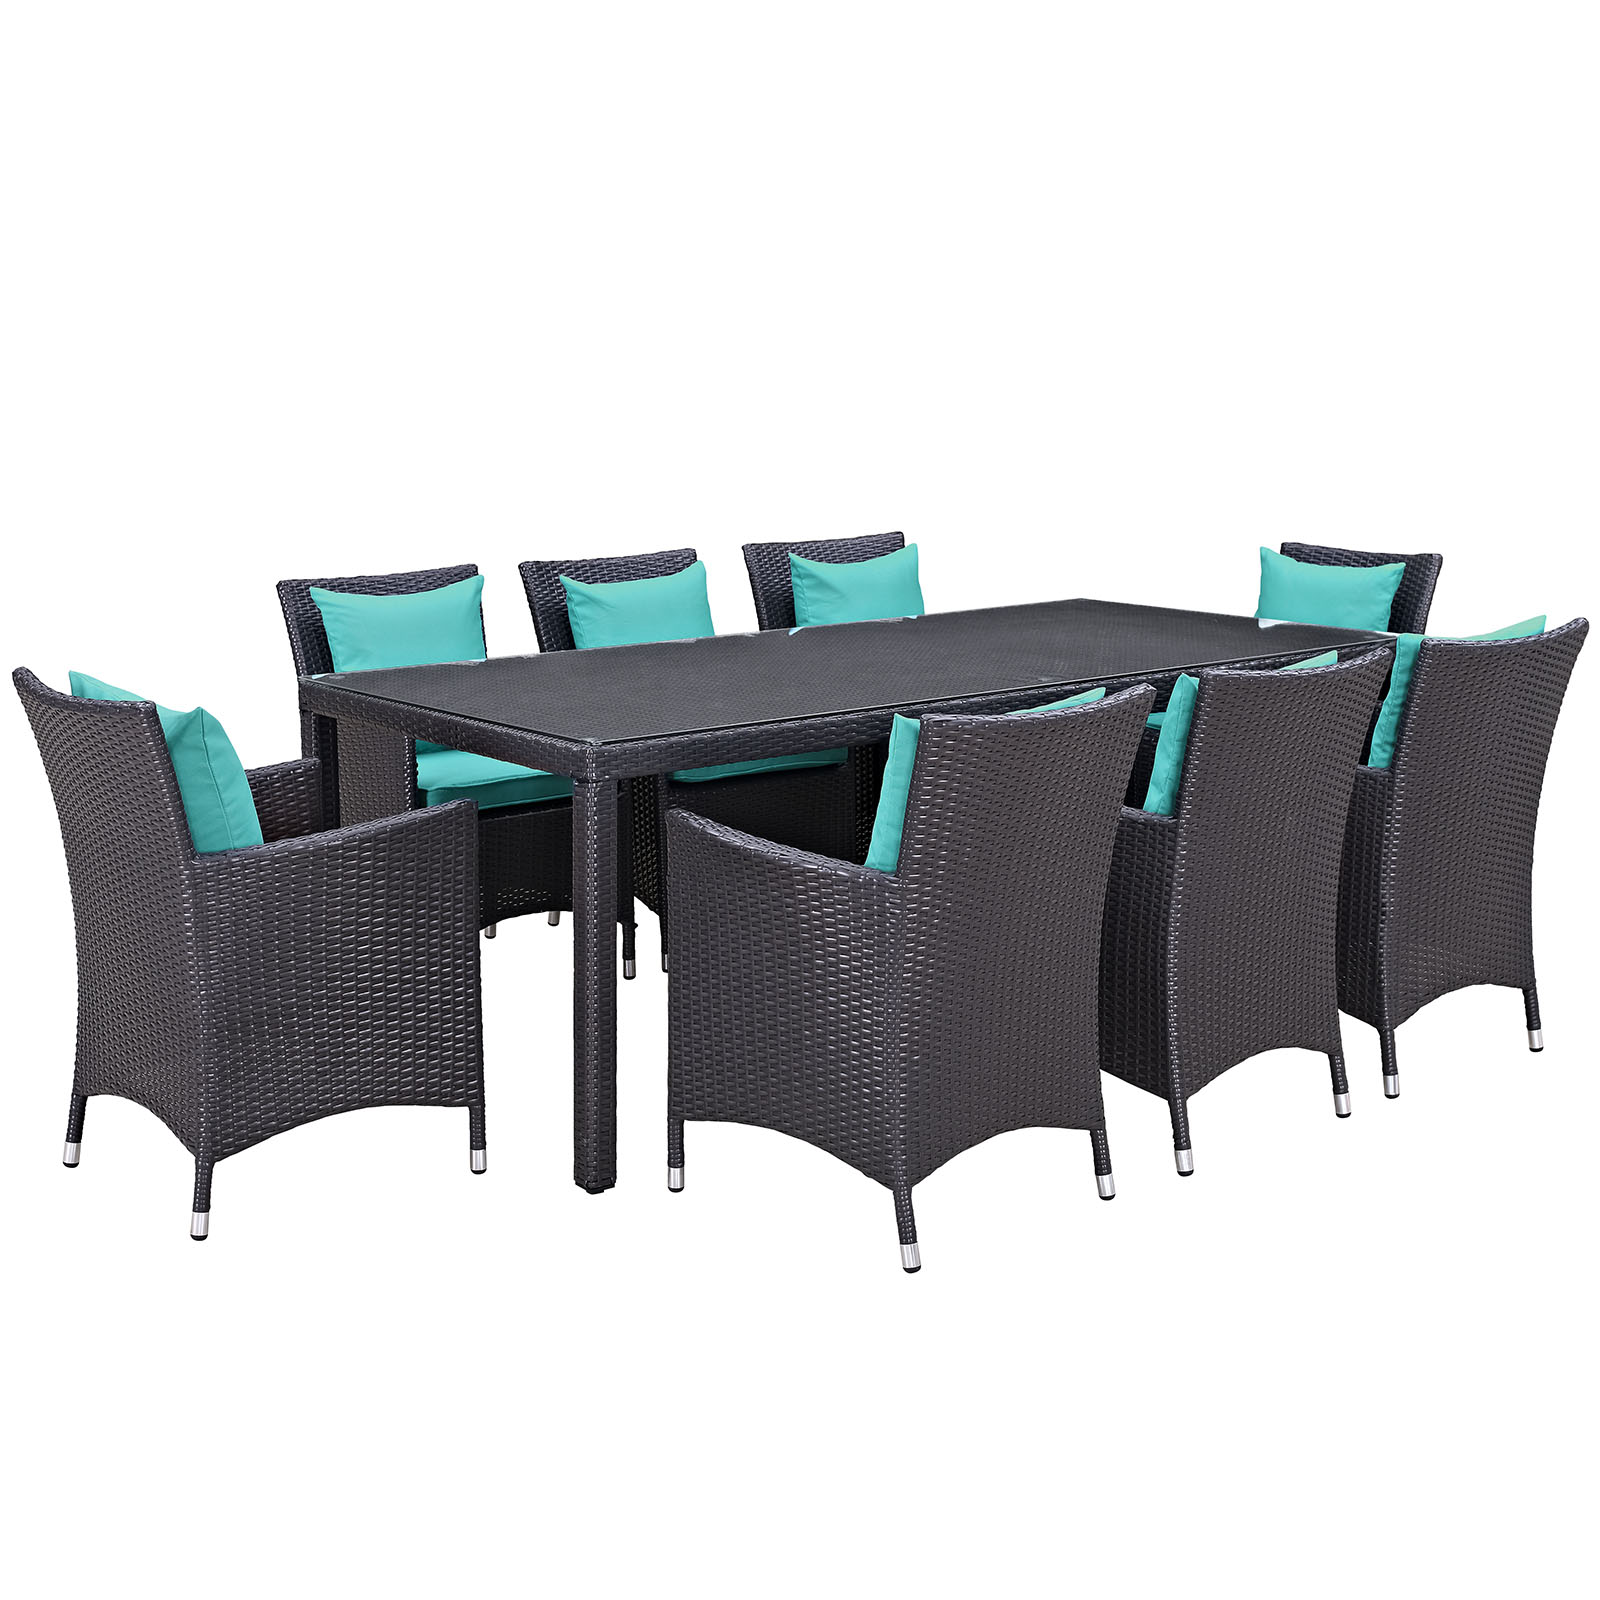 Modern Contemporary Urban Design Outdoor Patio Balcony Nine PCS Dining Chairs and Table Set, Blue, Rattan